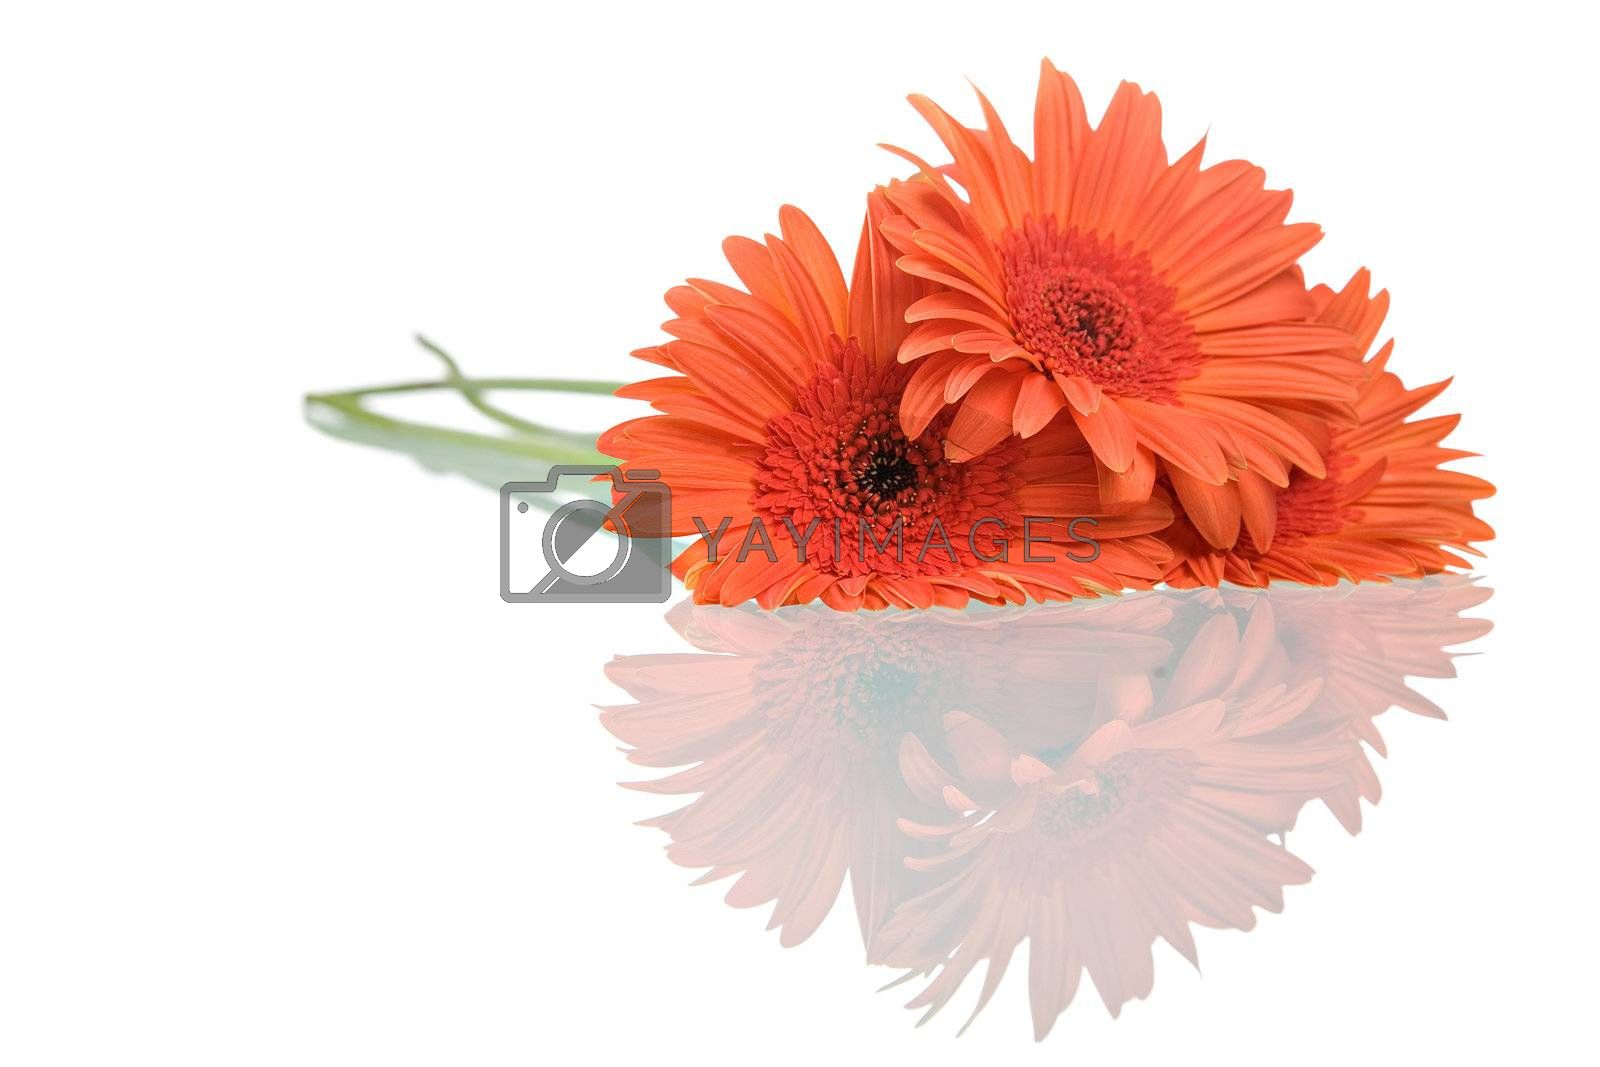 Gerber daisies with reflection isolated on white background.